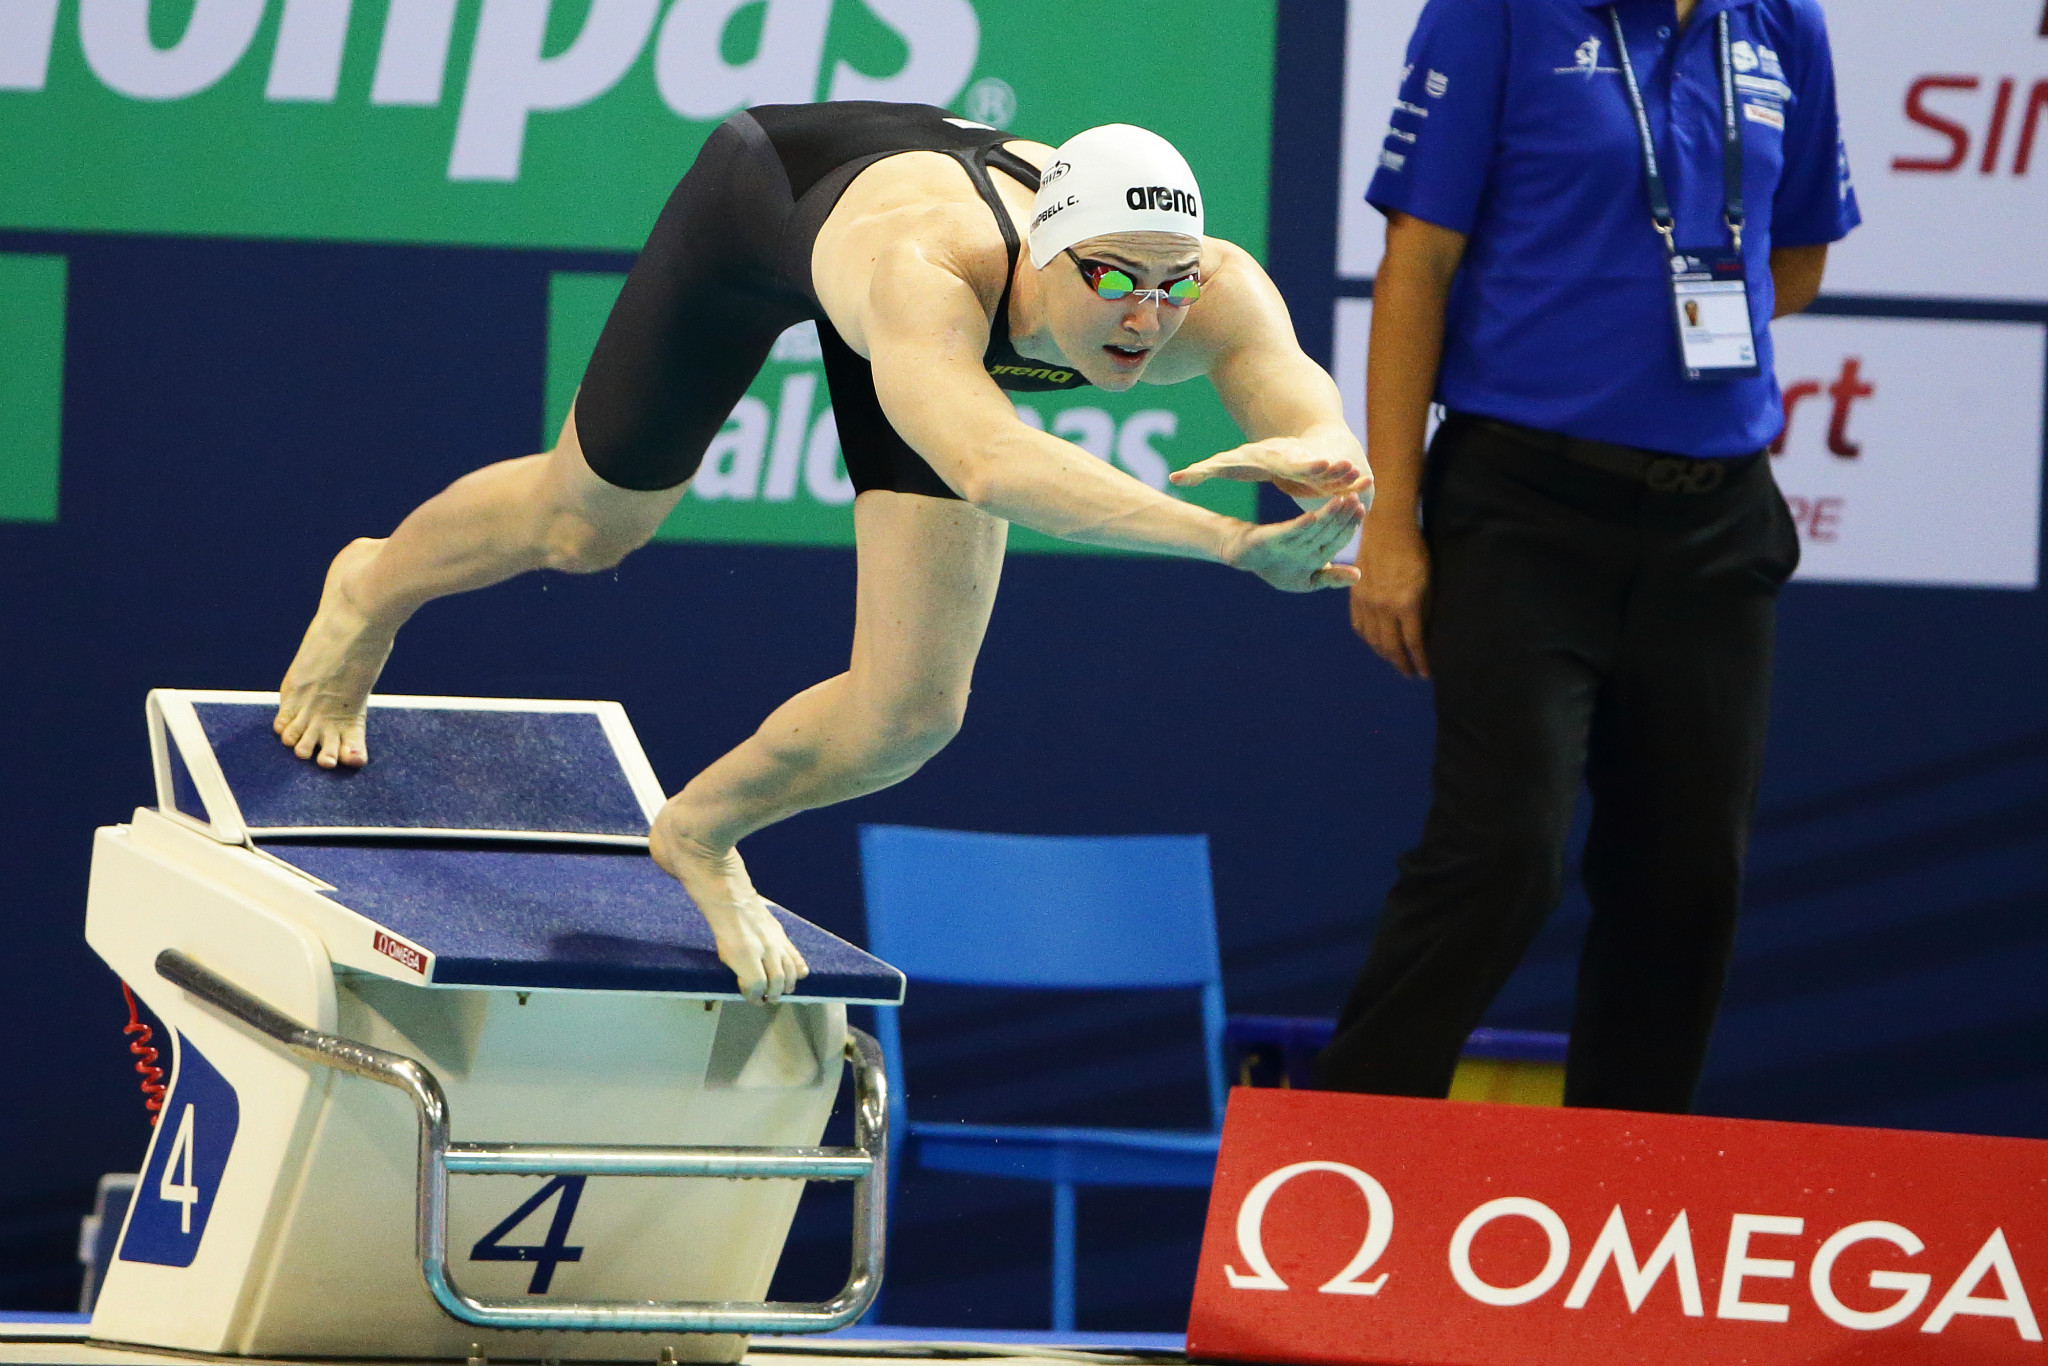 Campbell and Morozov aiming to stretch overall leads at FINA World Cup